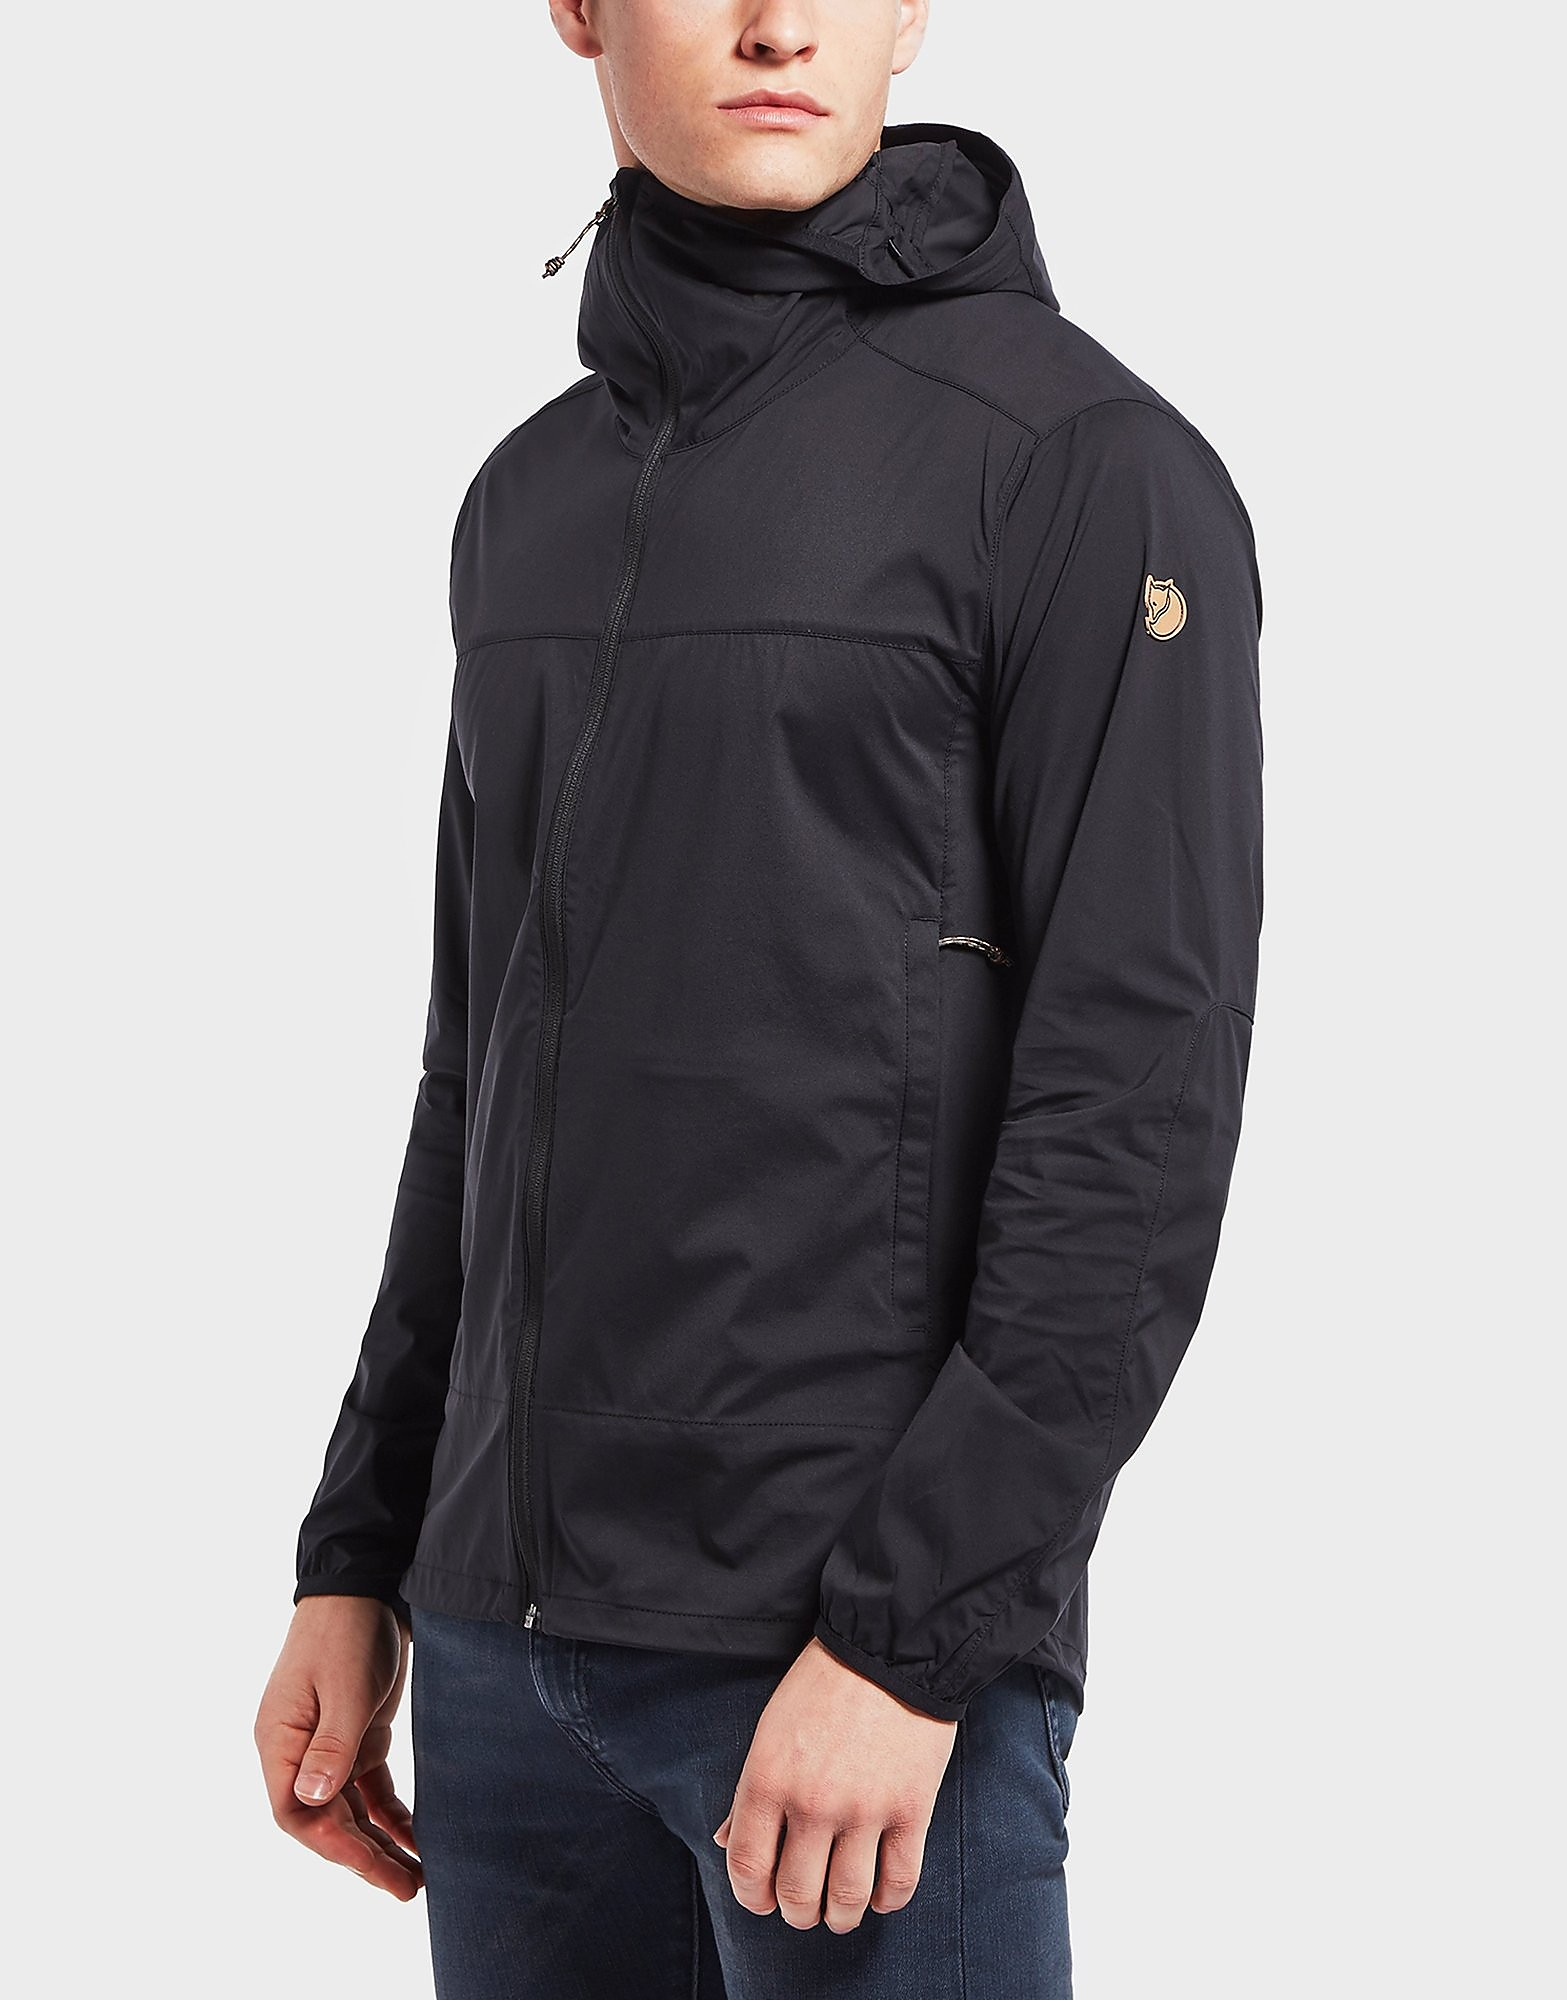 Fjallraven Abisko Lightweight Windbreaker Jacket